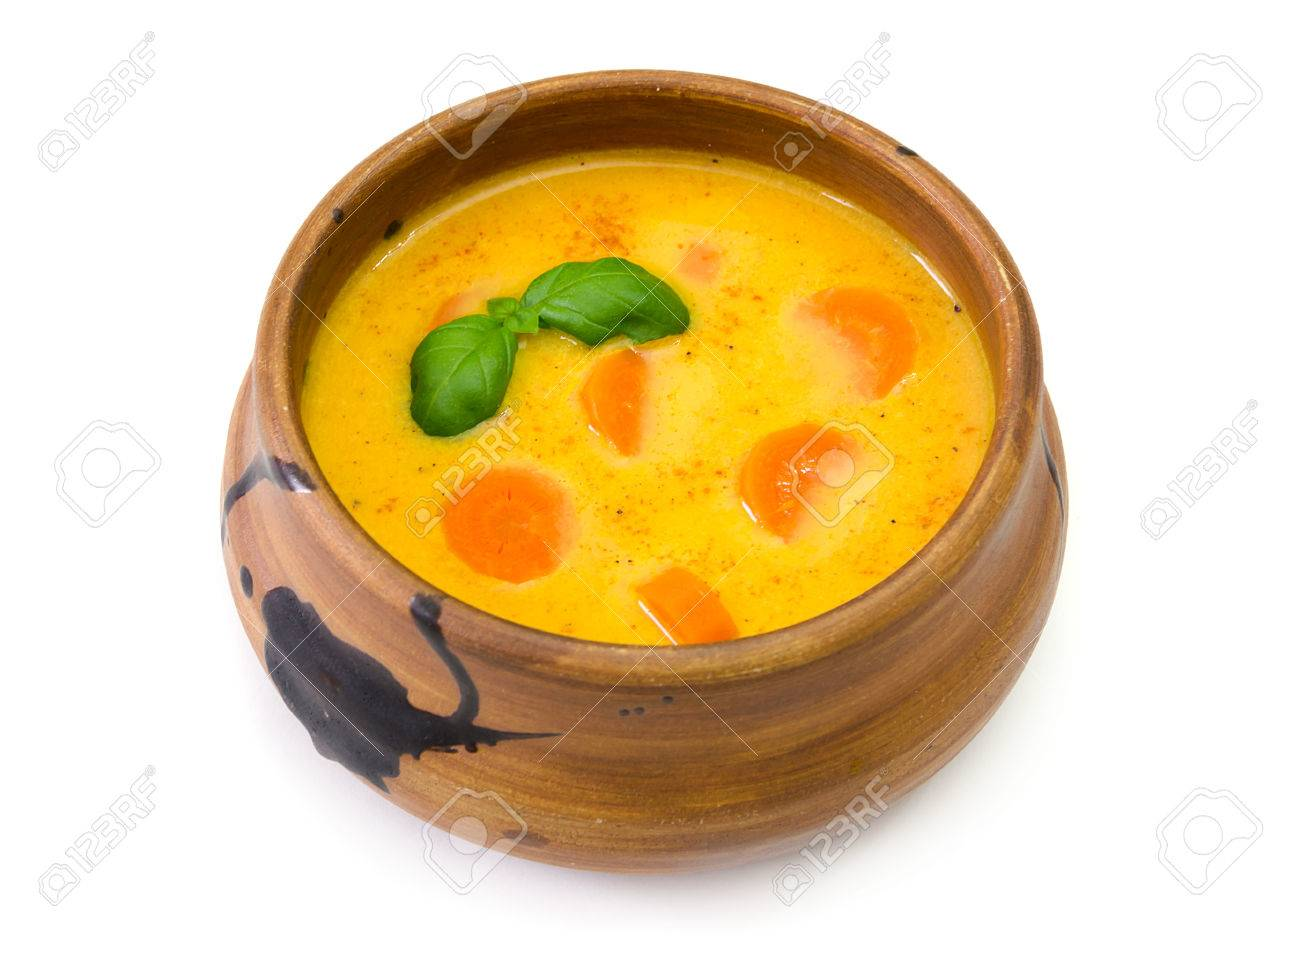 1300x974 A Soup Bowl Of Carrot Soup With Basil Leaves On White Background